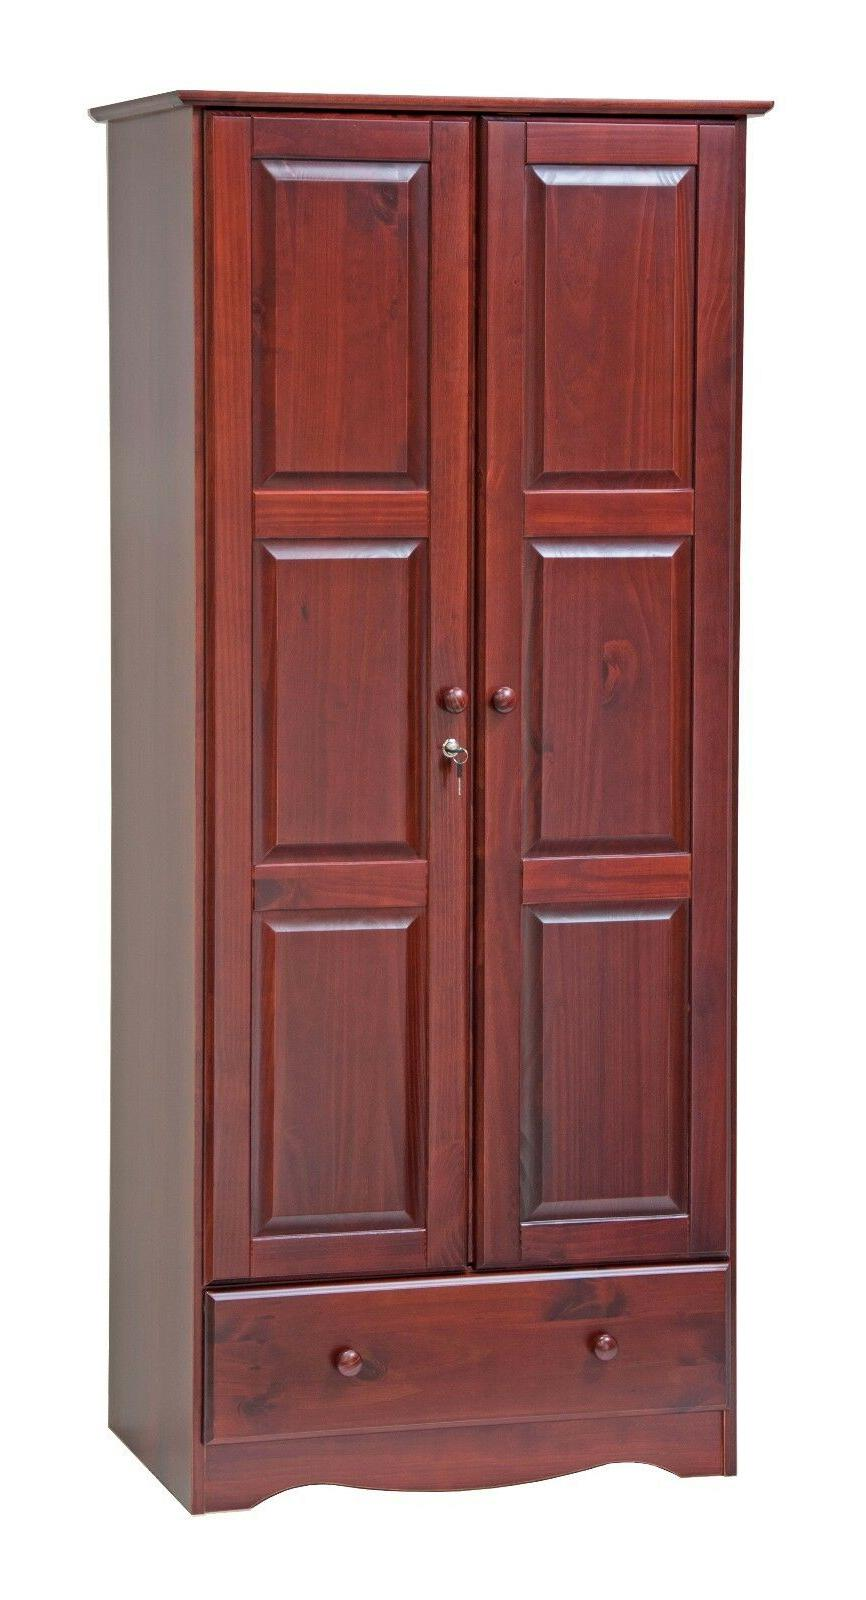 100% Solid Wood Wardrobe/Armoire/Closet Palace 3 Colors